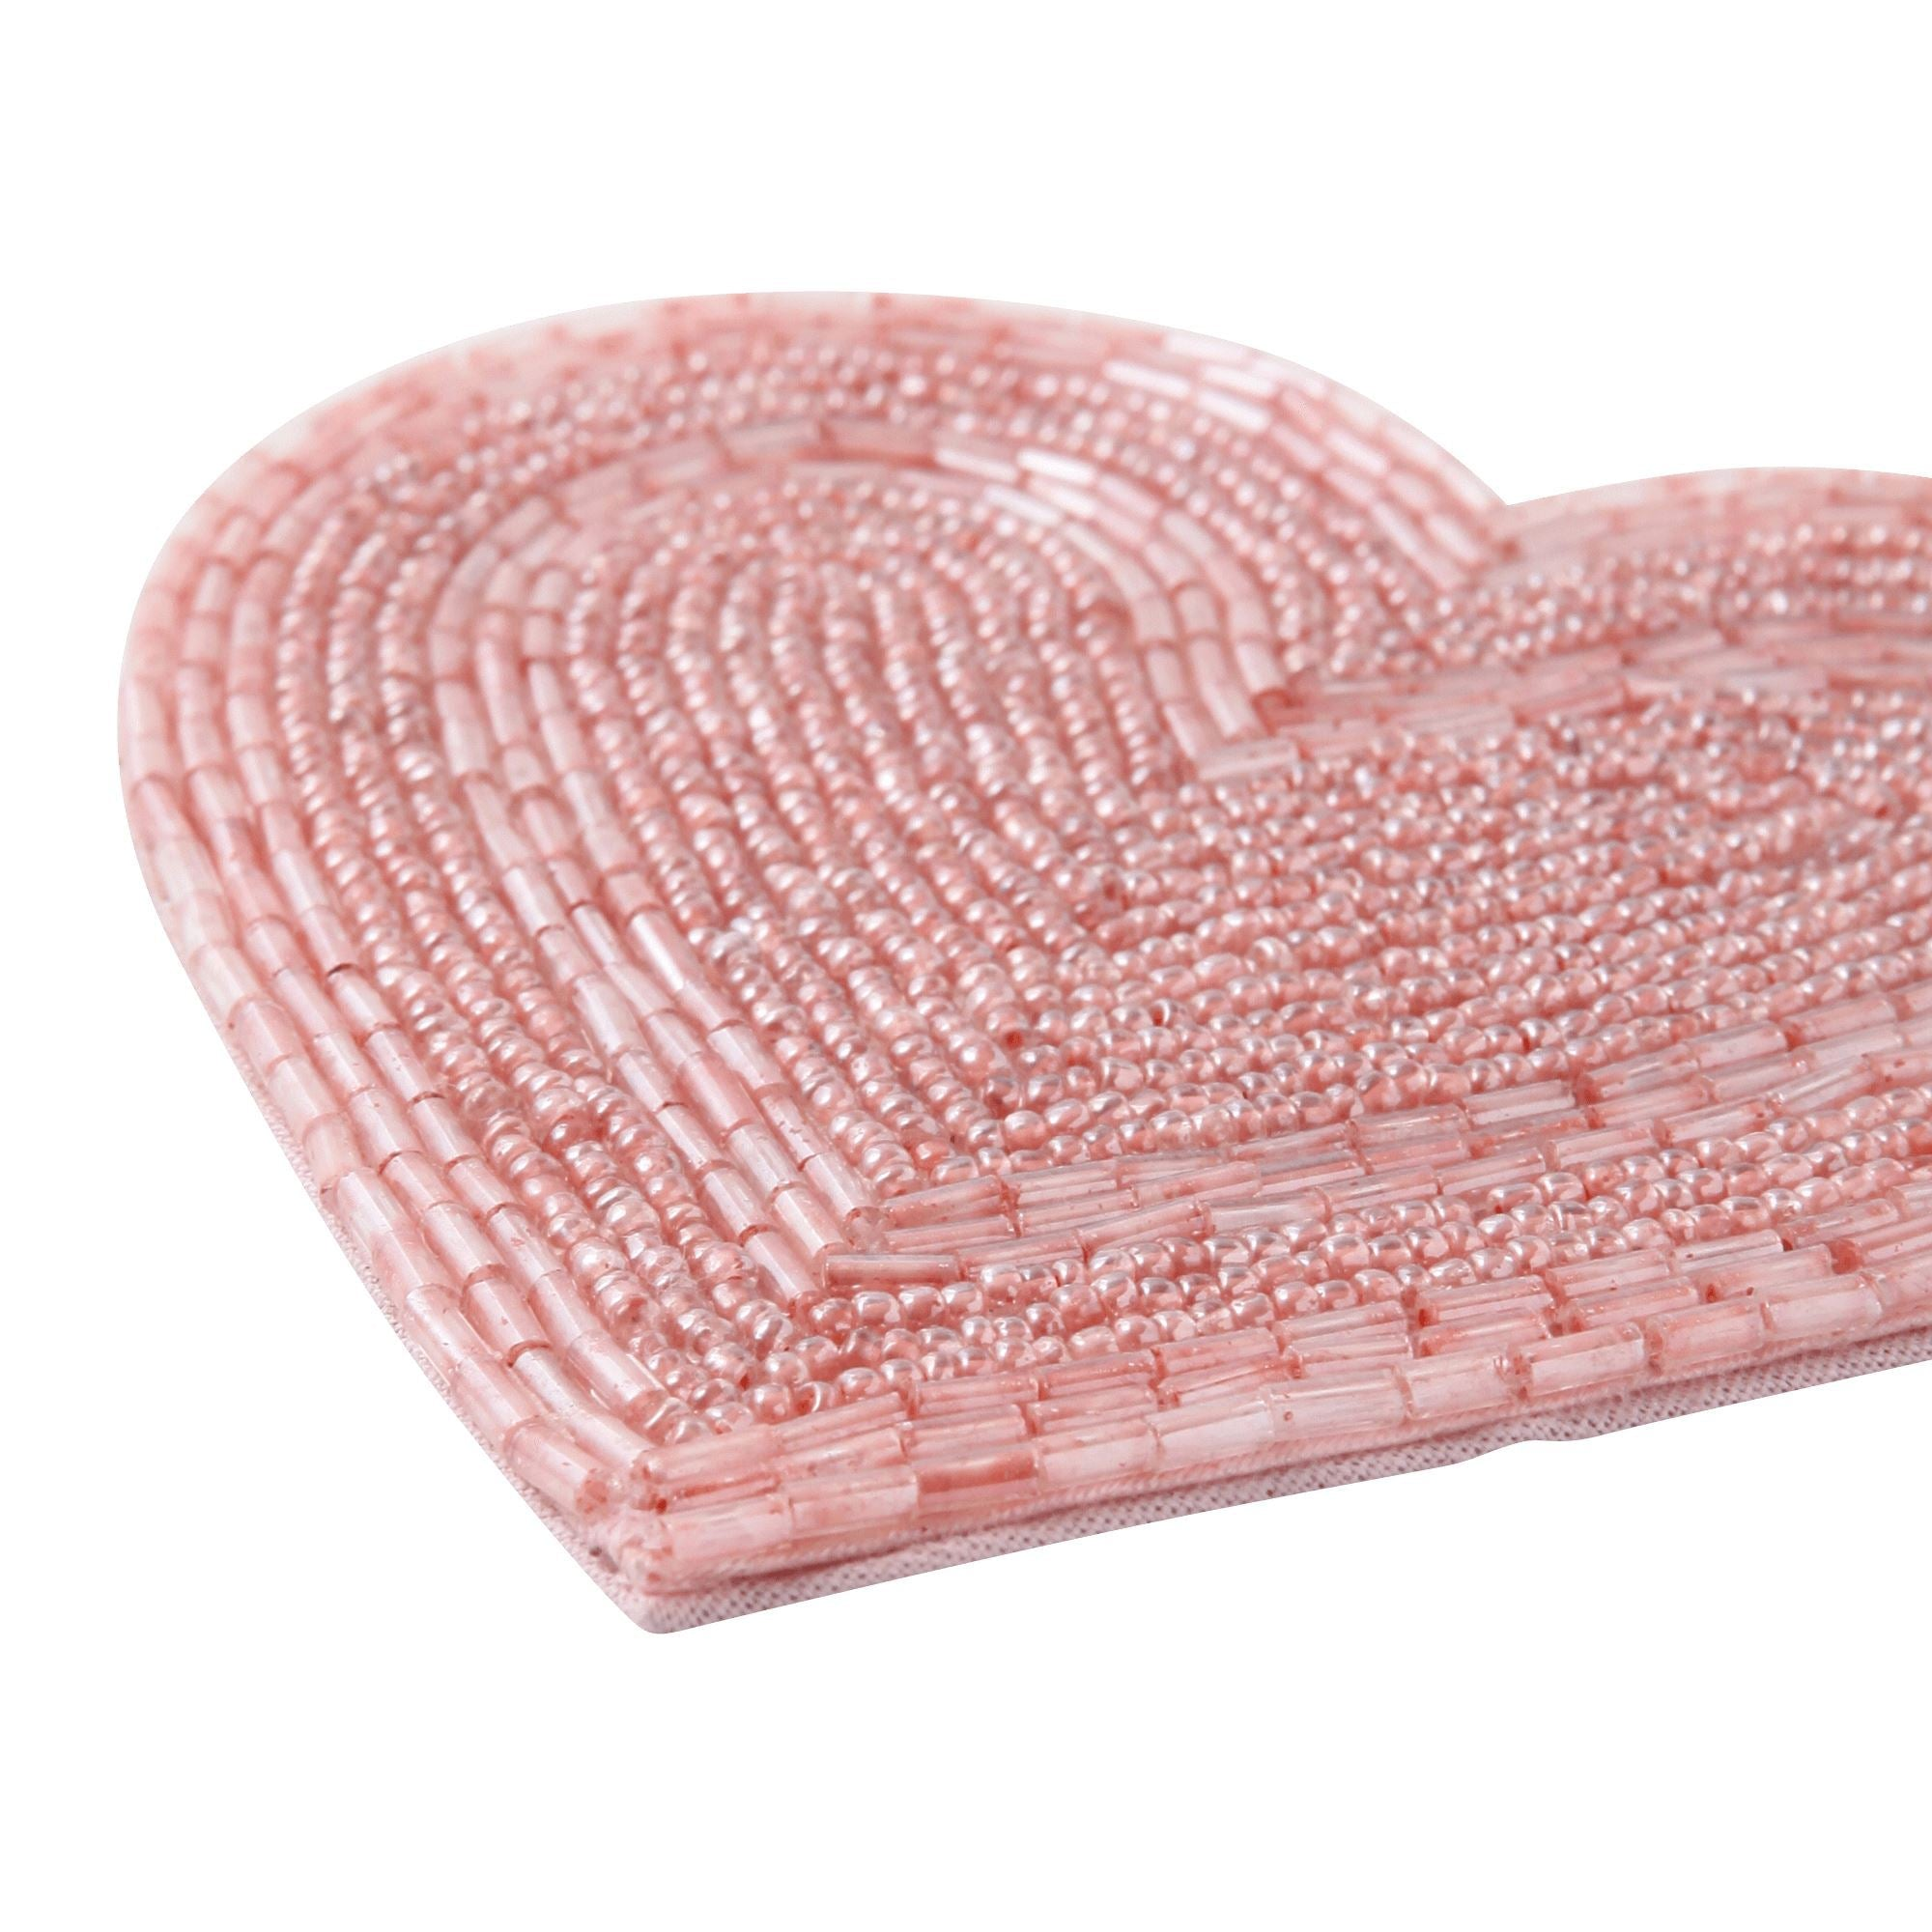 AUSA Heart Beads Coaster Light Pink - weare-francfranc